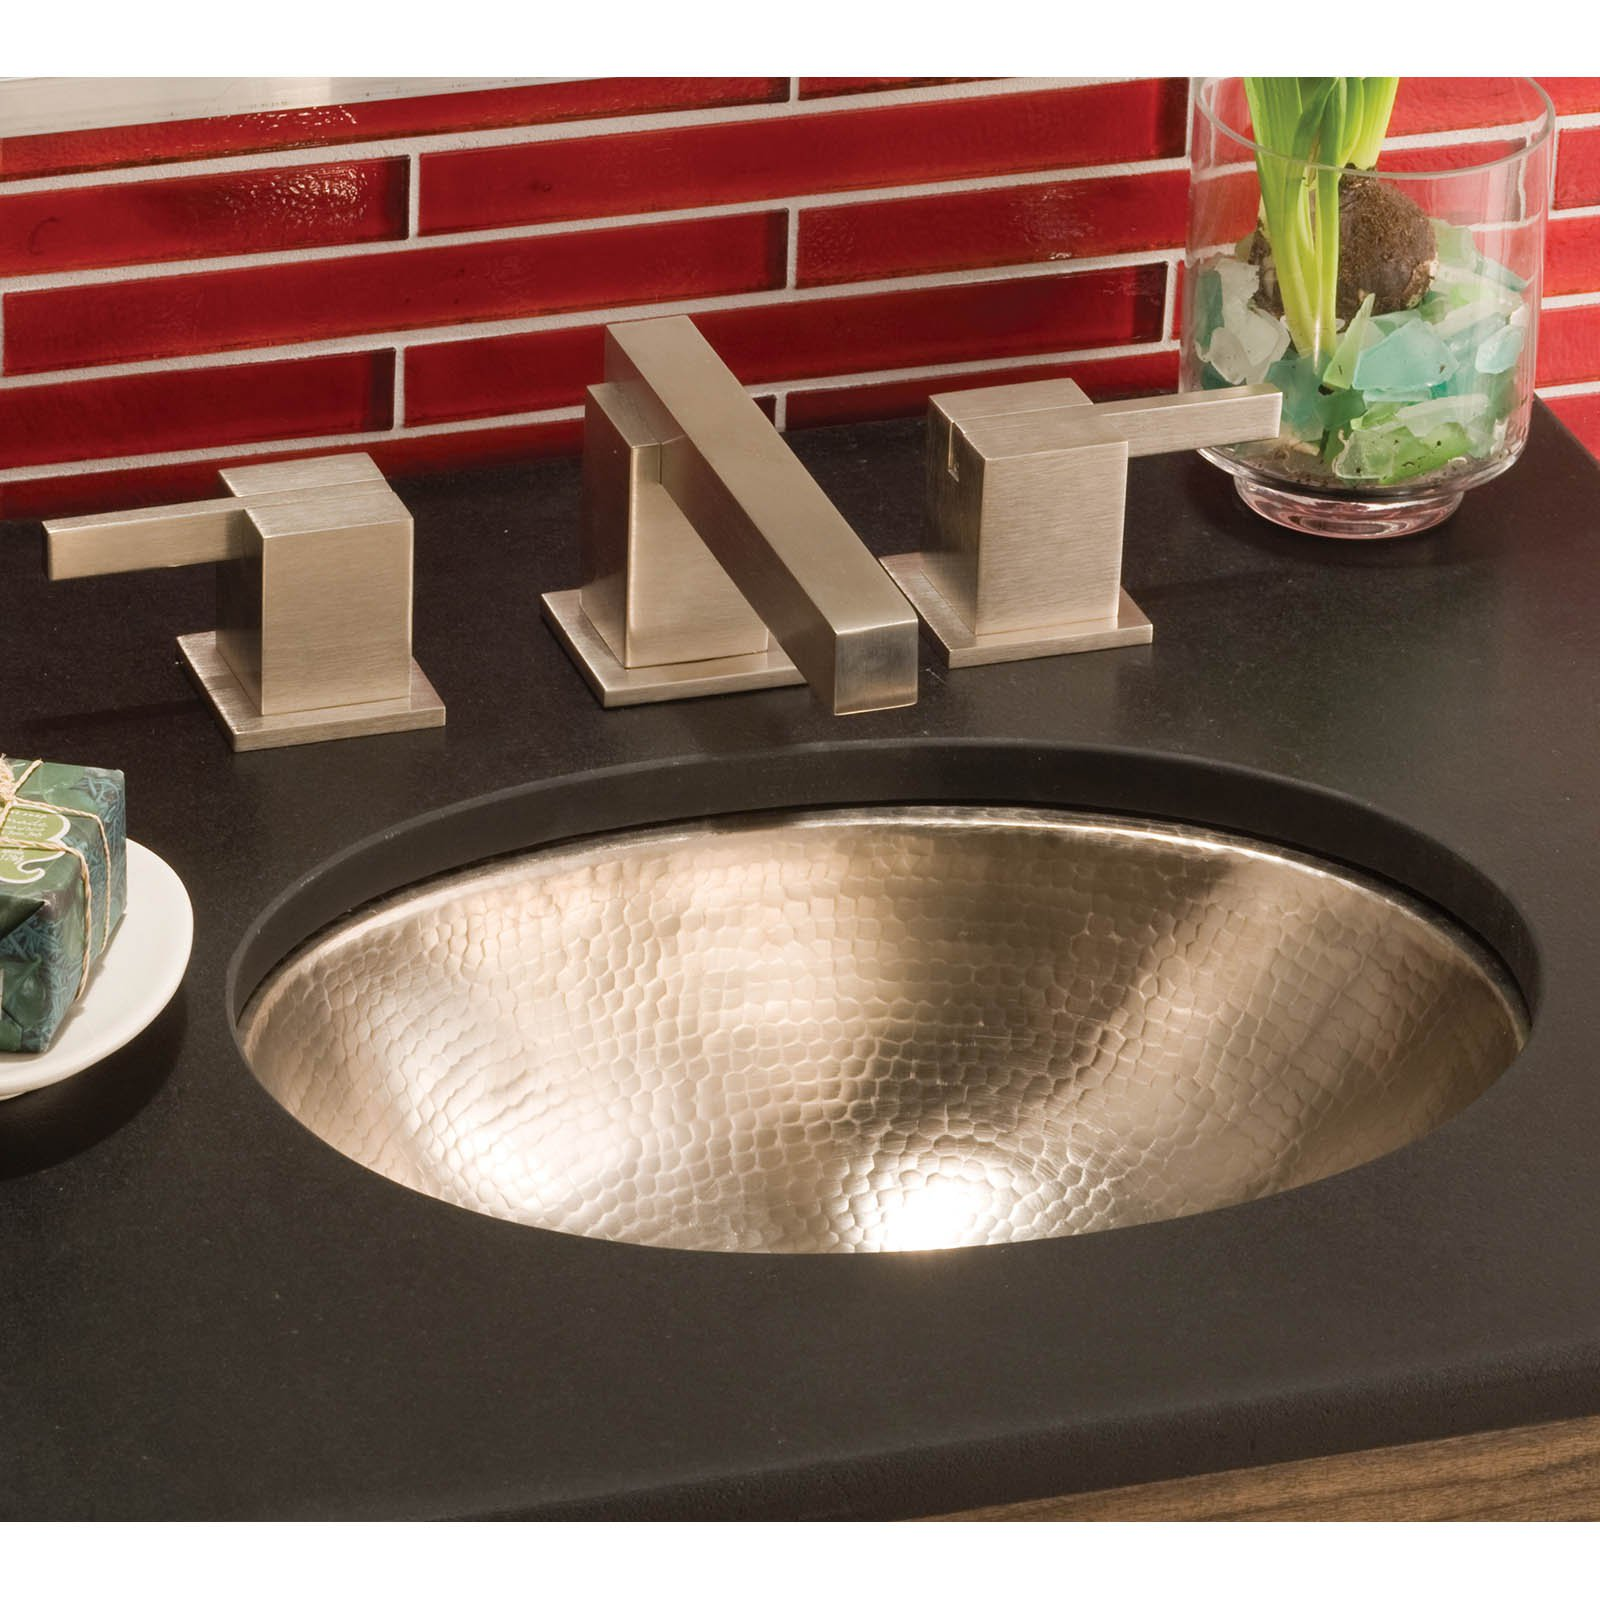 Native Trails CPS Baby Classic Bathroom Sink